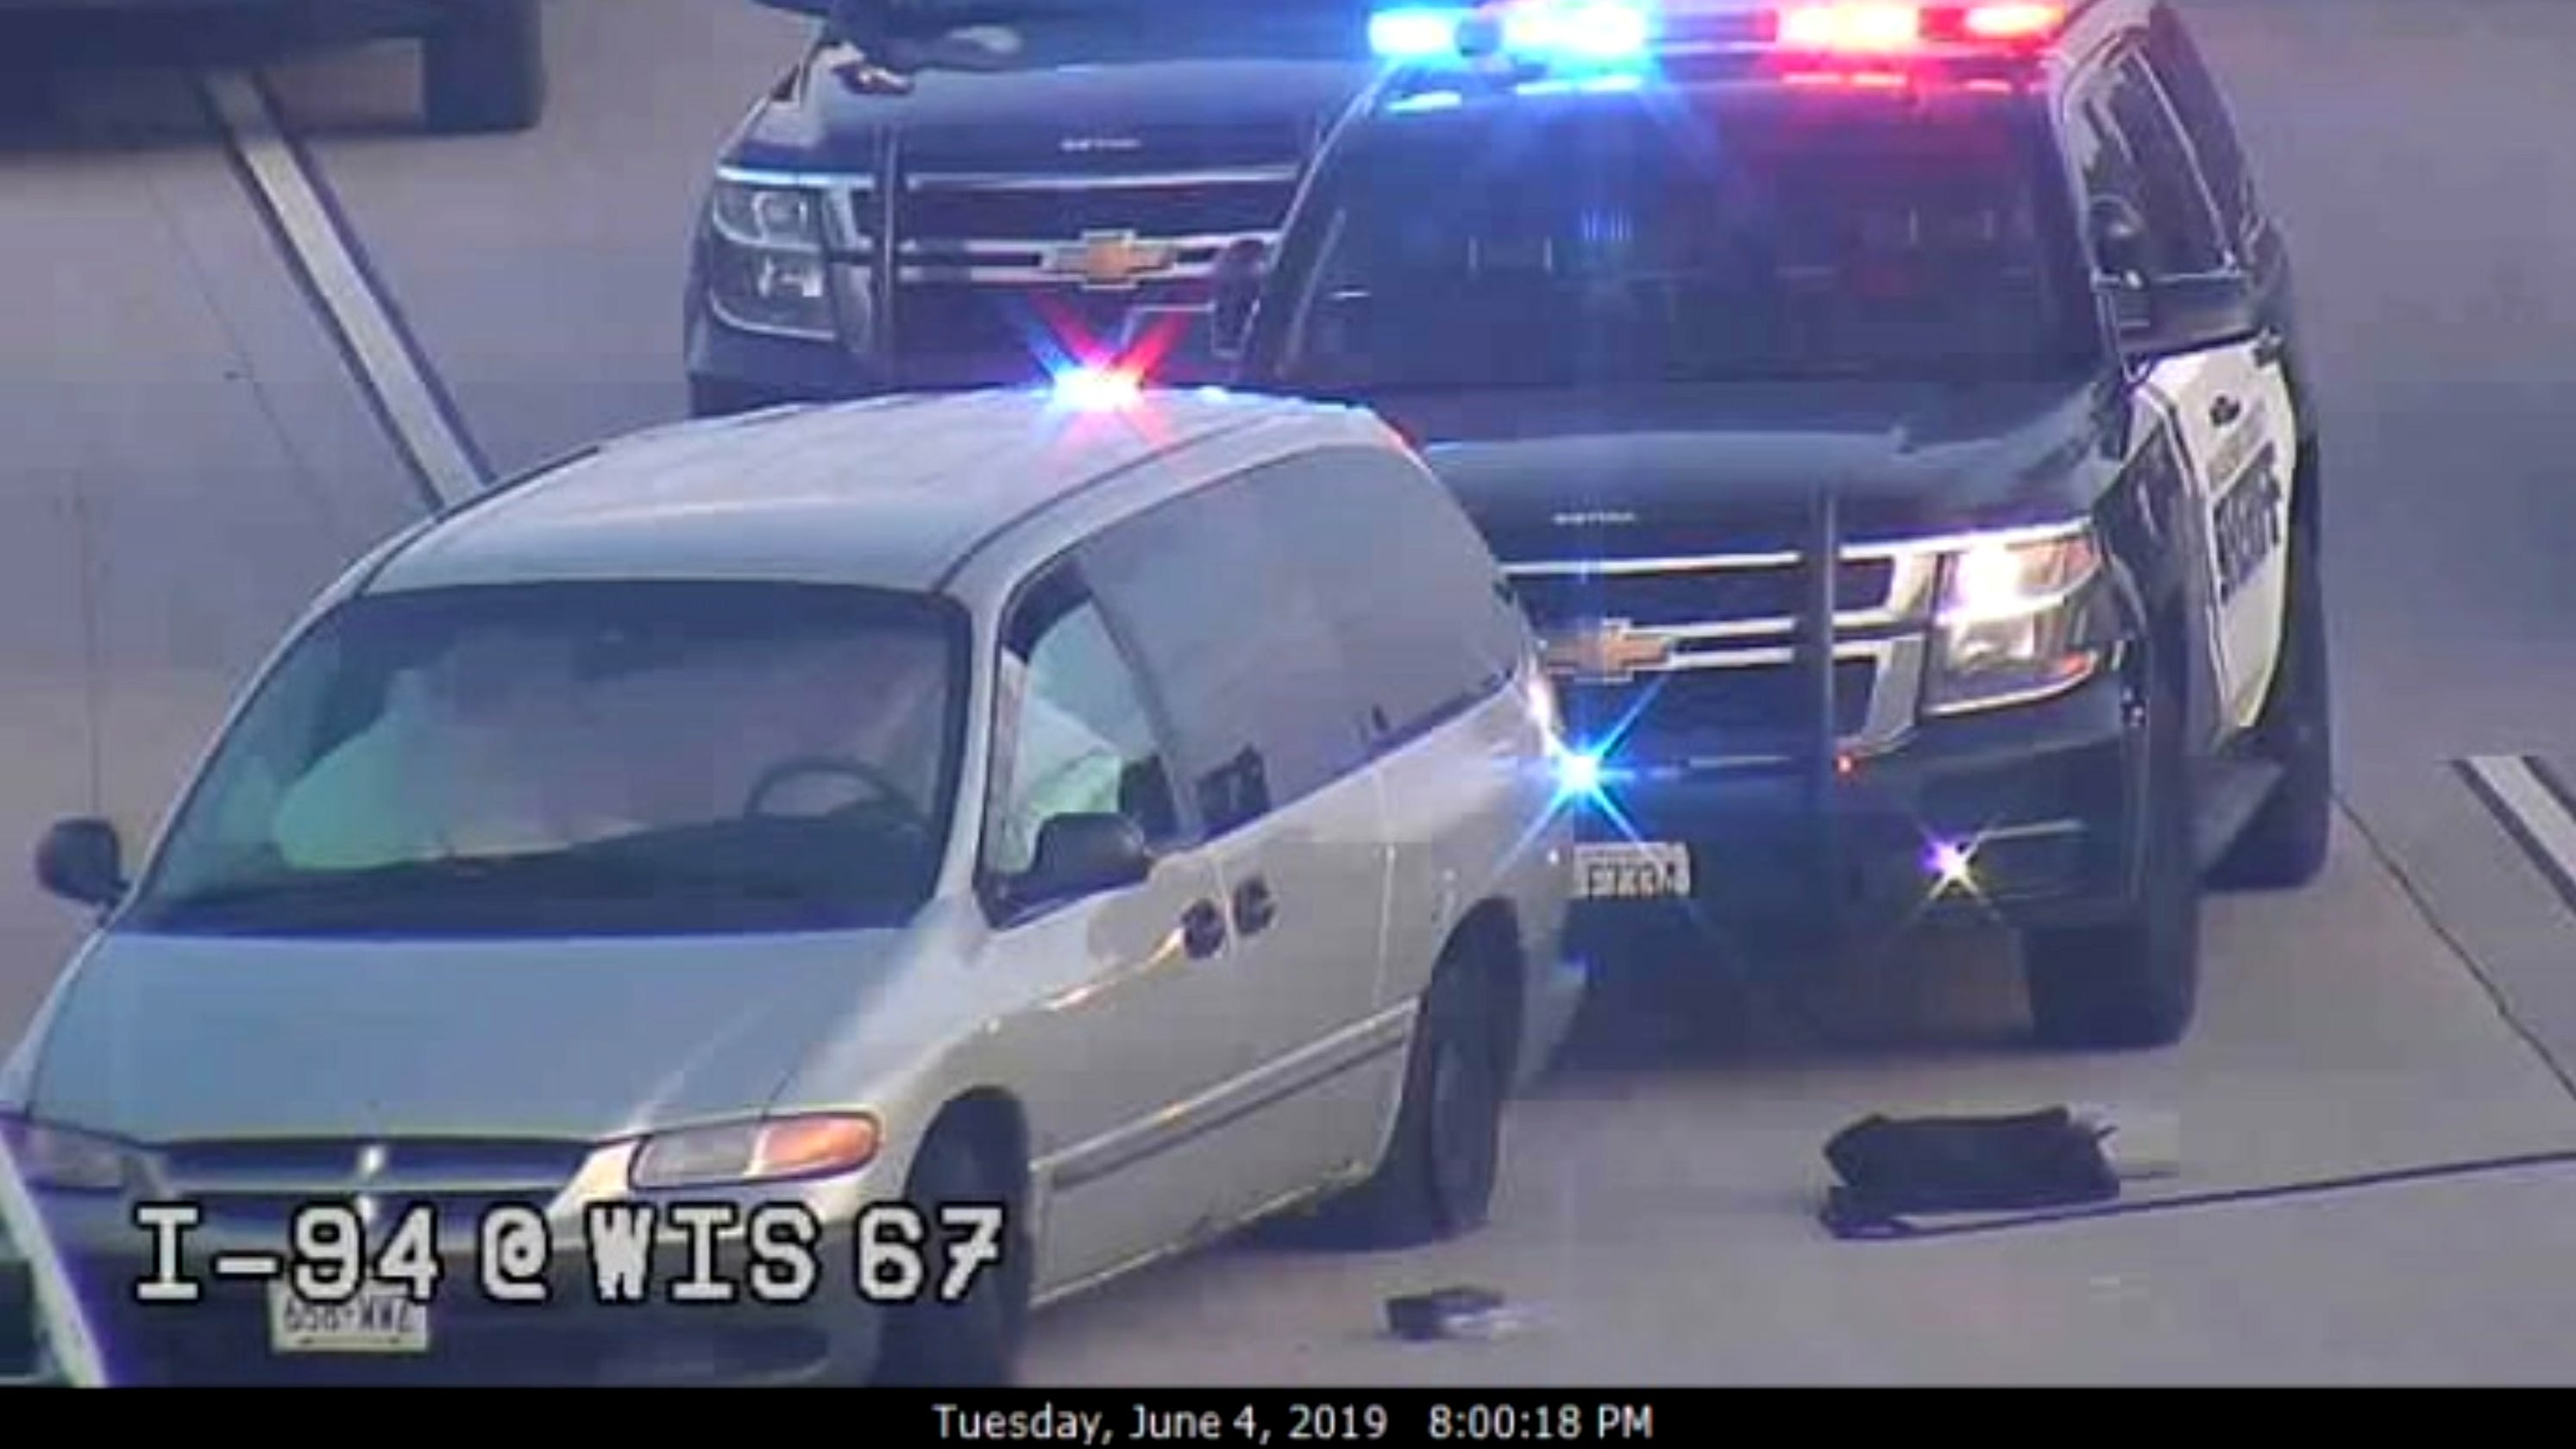 I-94 standoff: Incident started with attempted stop of stolen van